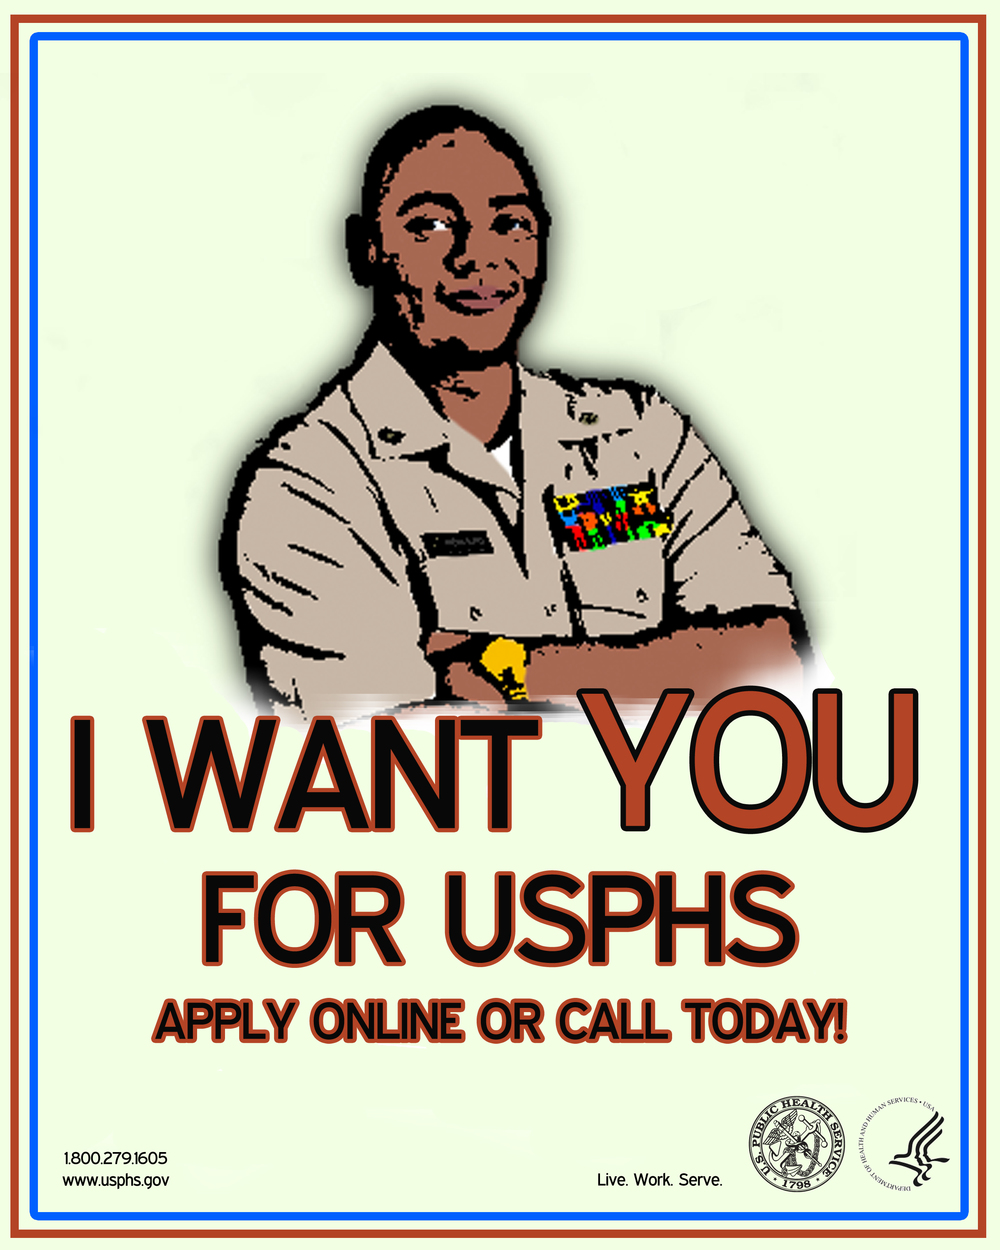 USPHS UNCLE SAM.jpg